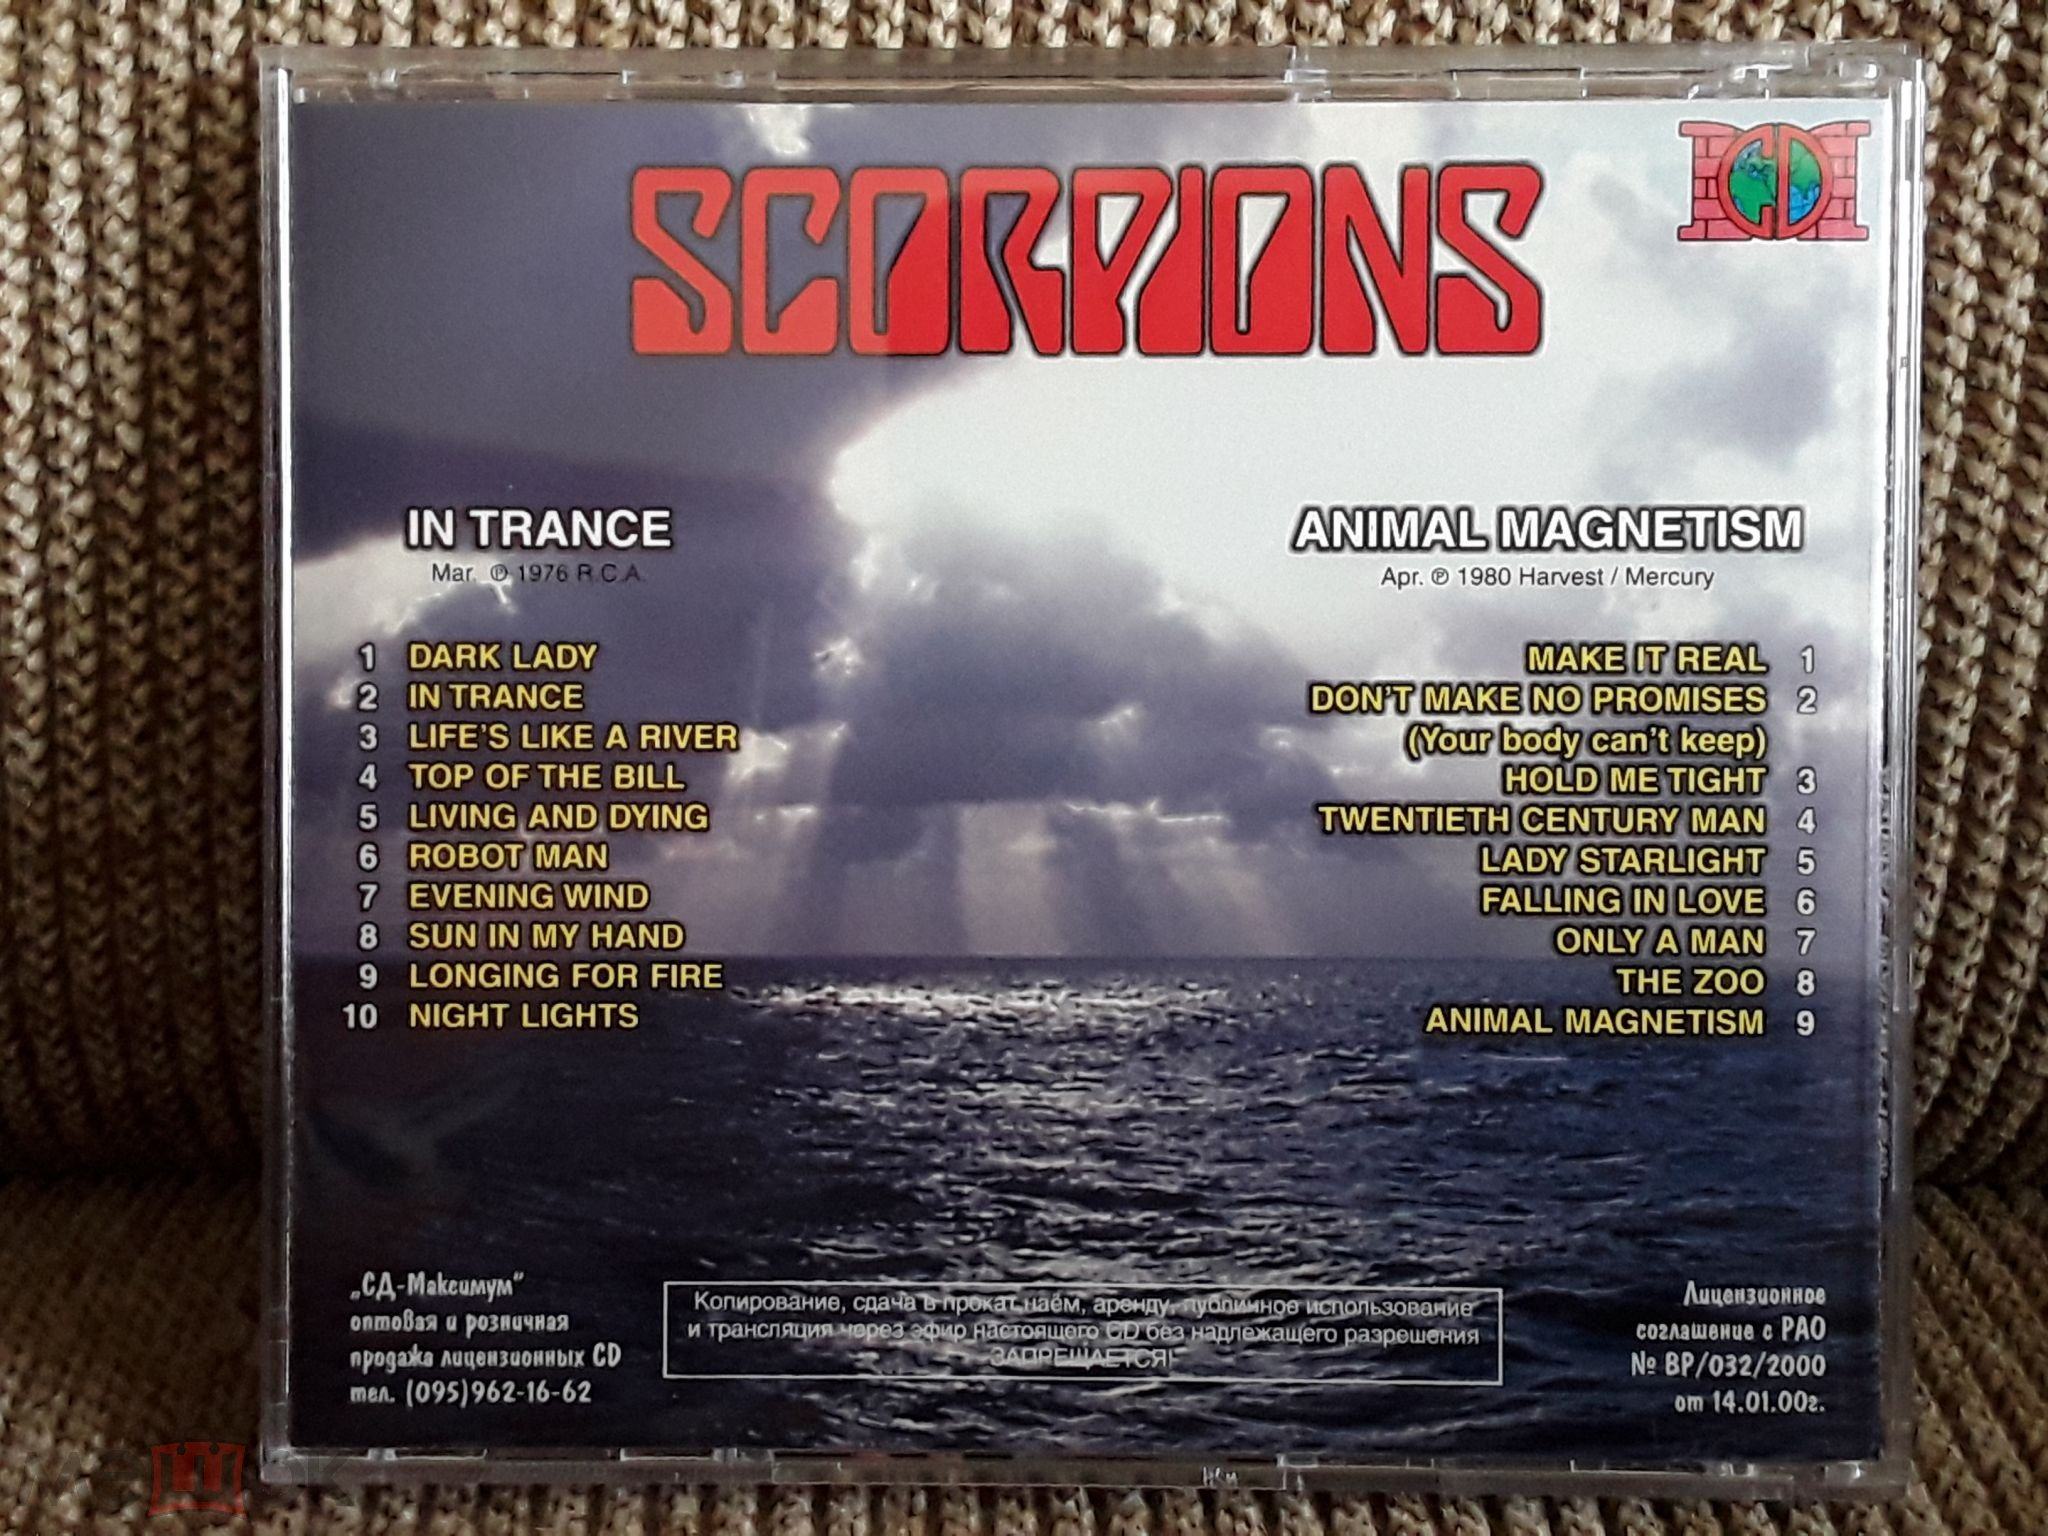 SCORPIONS - In Trance - 1976 / Animal Magnetism - 1980              RARE !!!